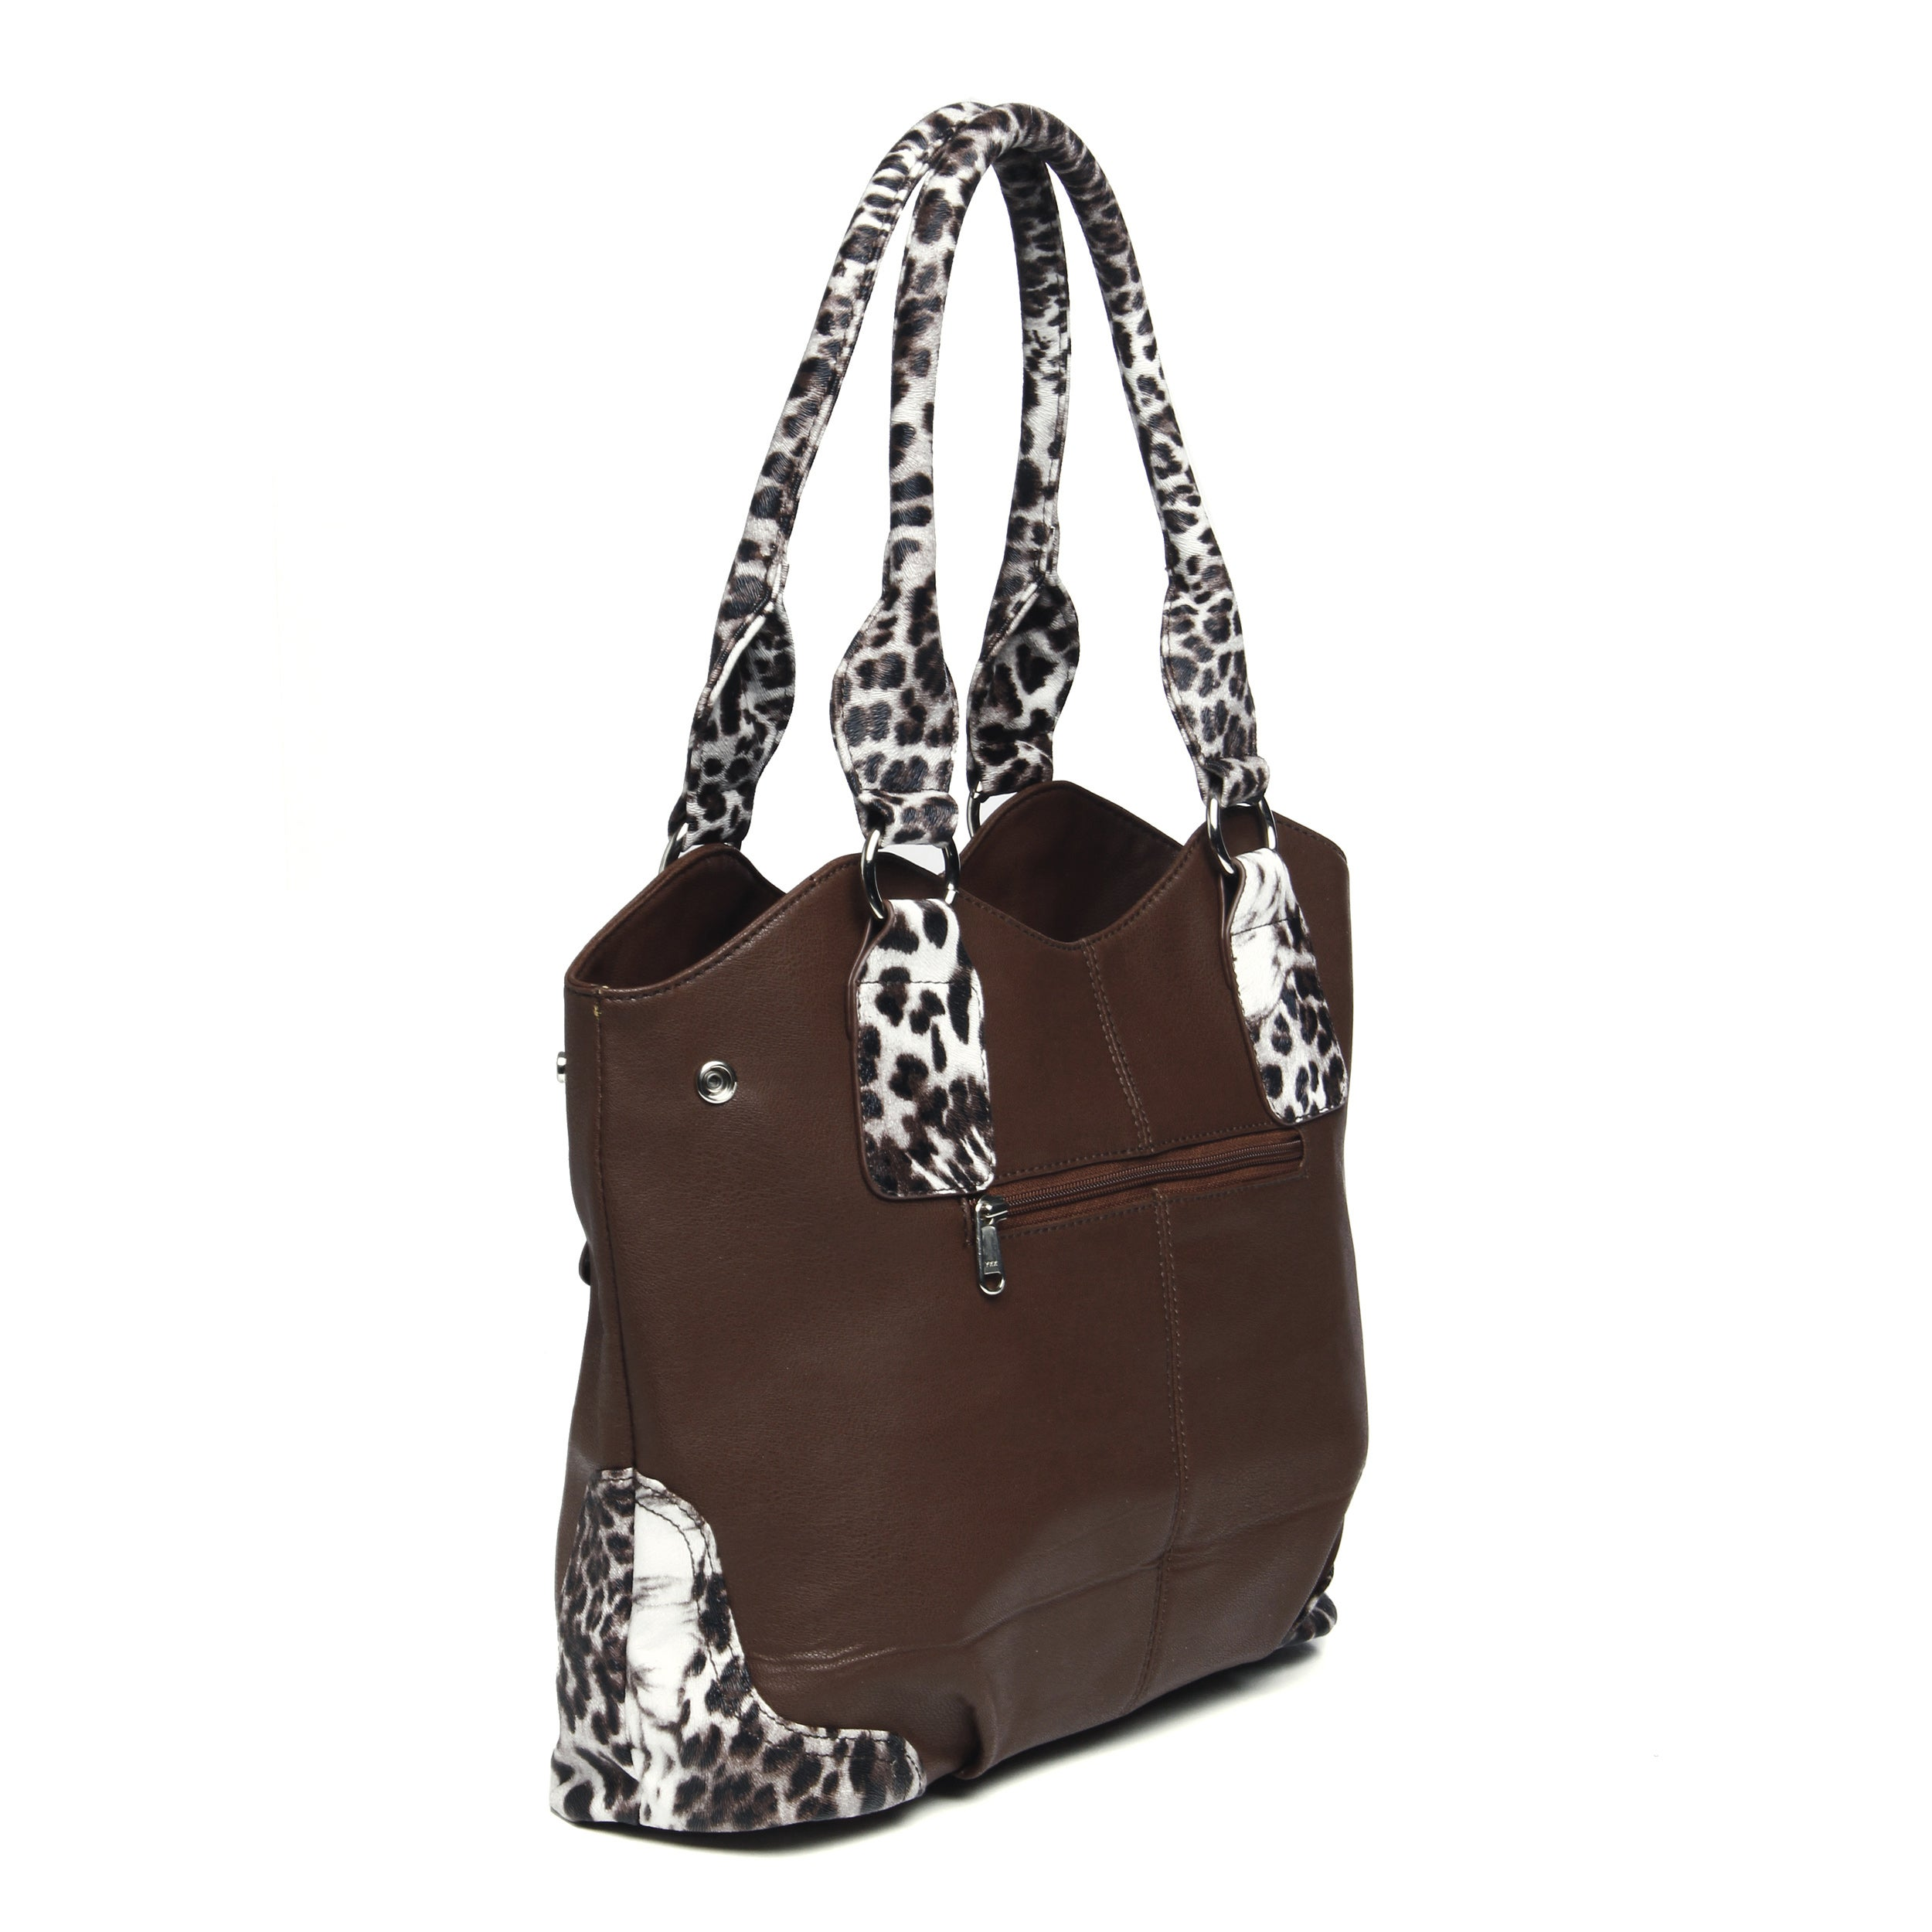 8c3cefb7d5 Shop J. Furmani Brown Animal-print Trim Knotted Handle Tote Bag - Free  Shipping Today - Overstock.com - 8771619